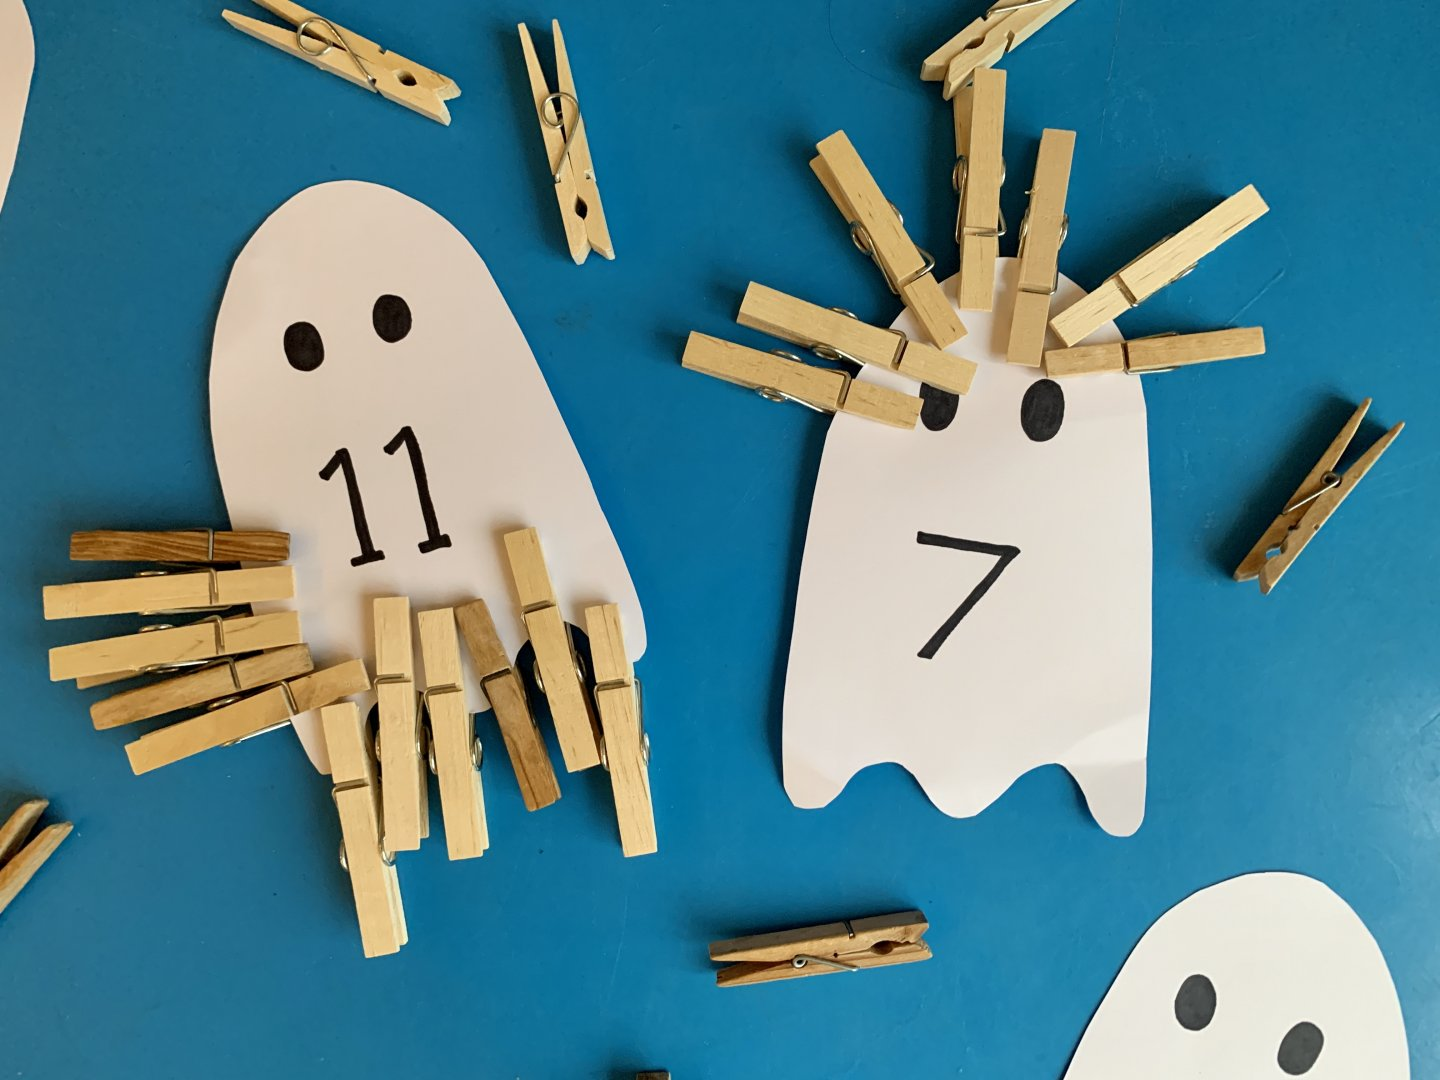 Two white card ghosts, one with a number 11 written on it and the other with number 7 written on it in black ink. Each ghost has the corresponding number of pegs clipped to it.